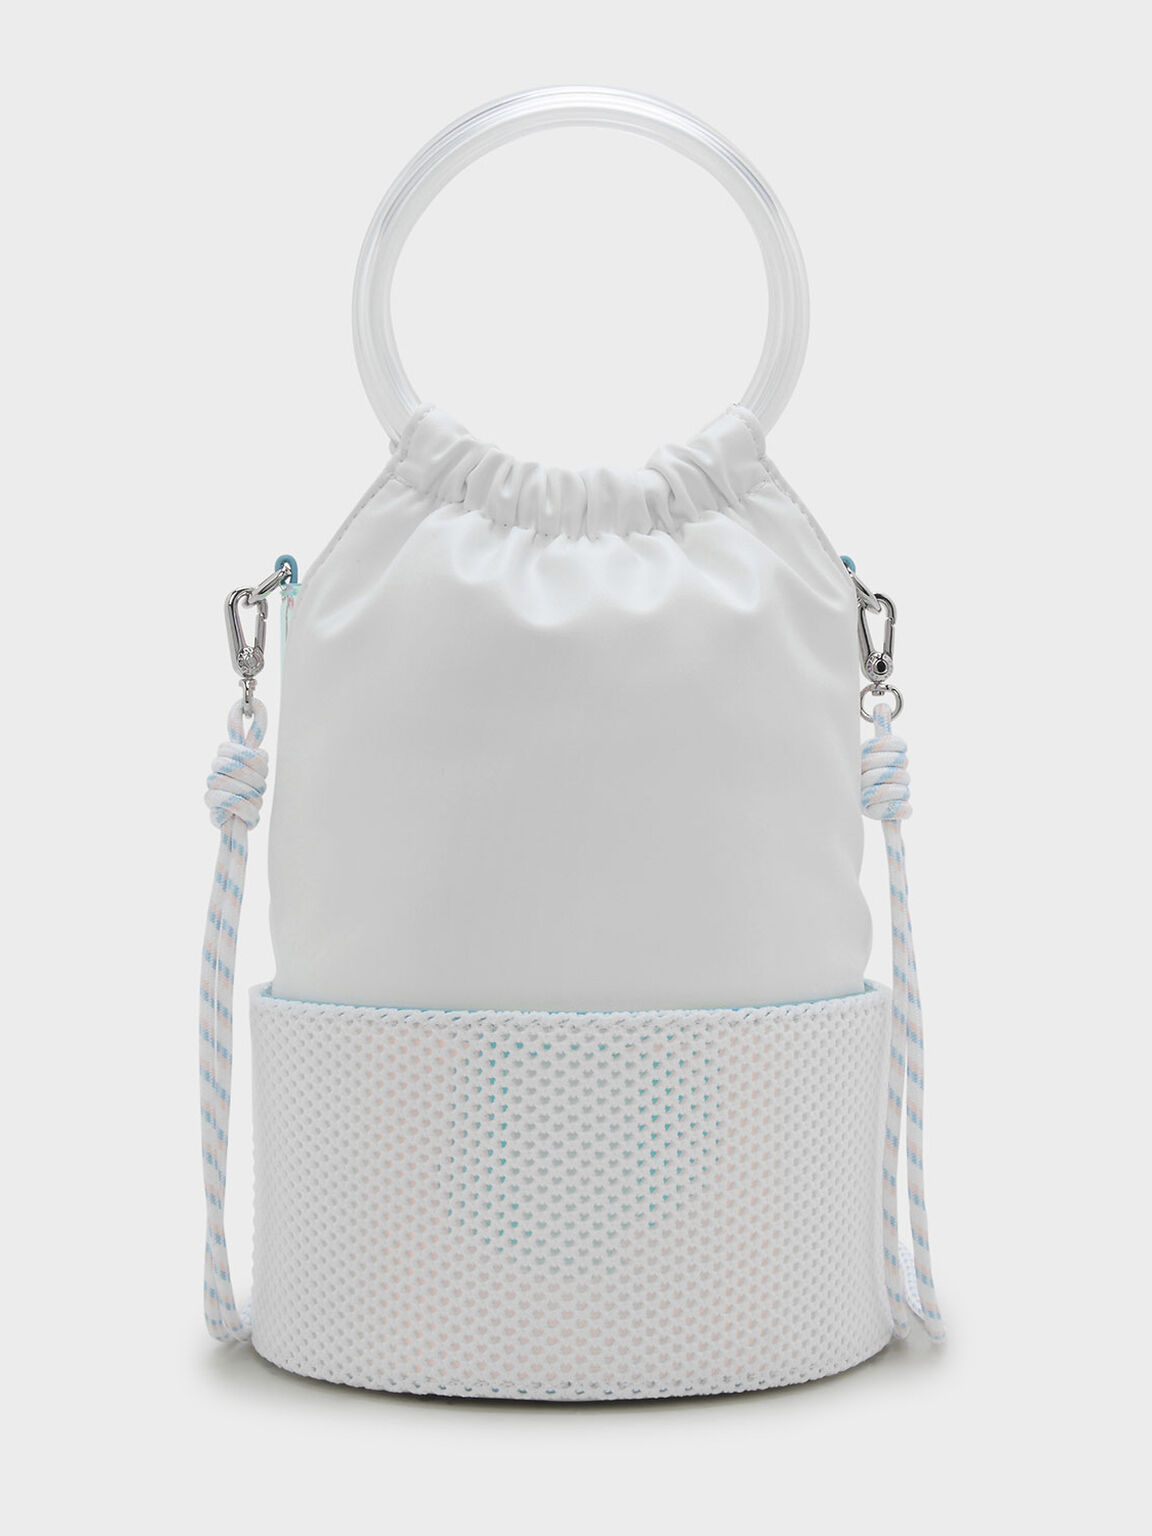 Circular Mesh Detail Sling Bag, White, hi-res